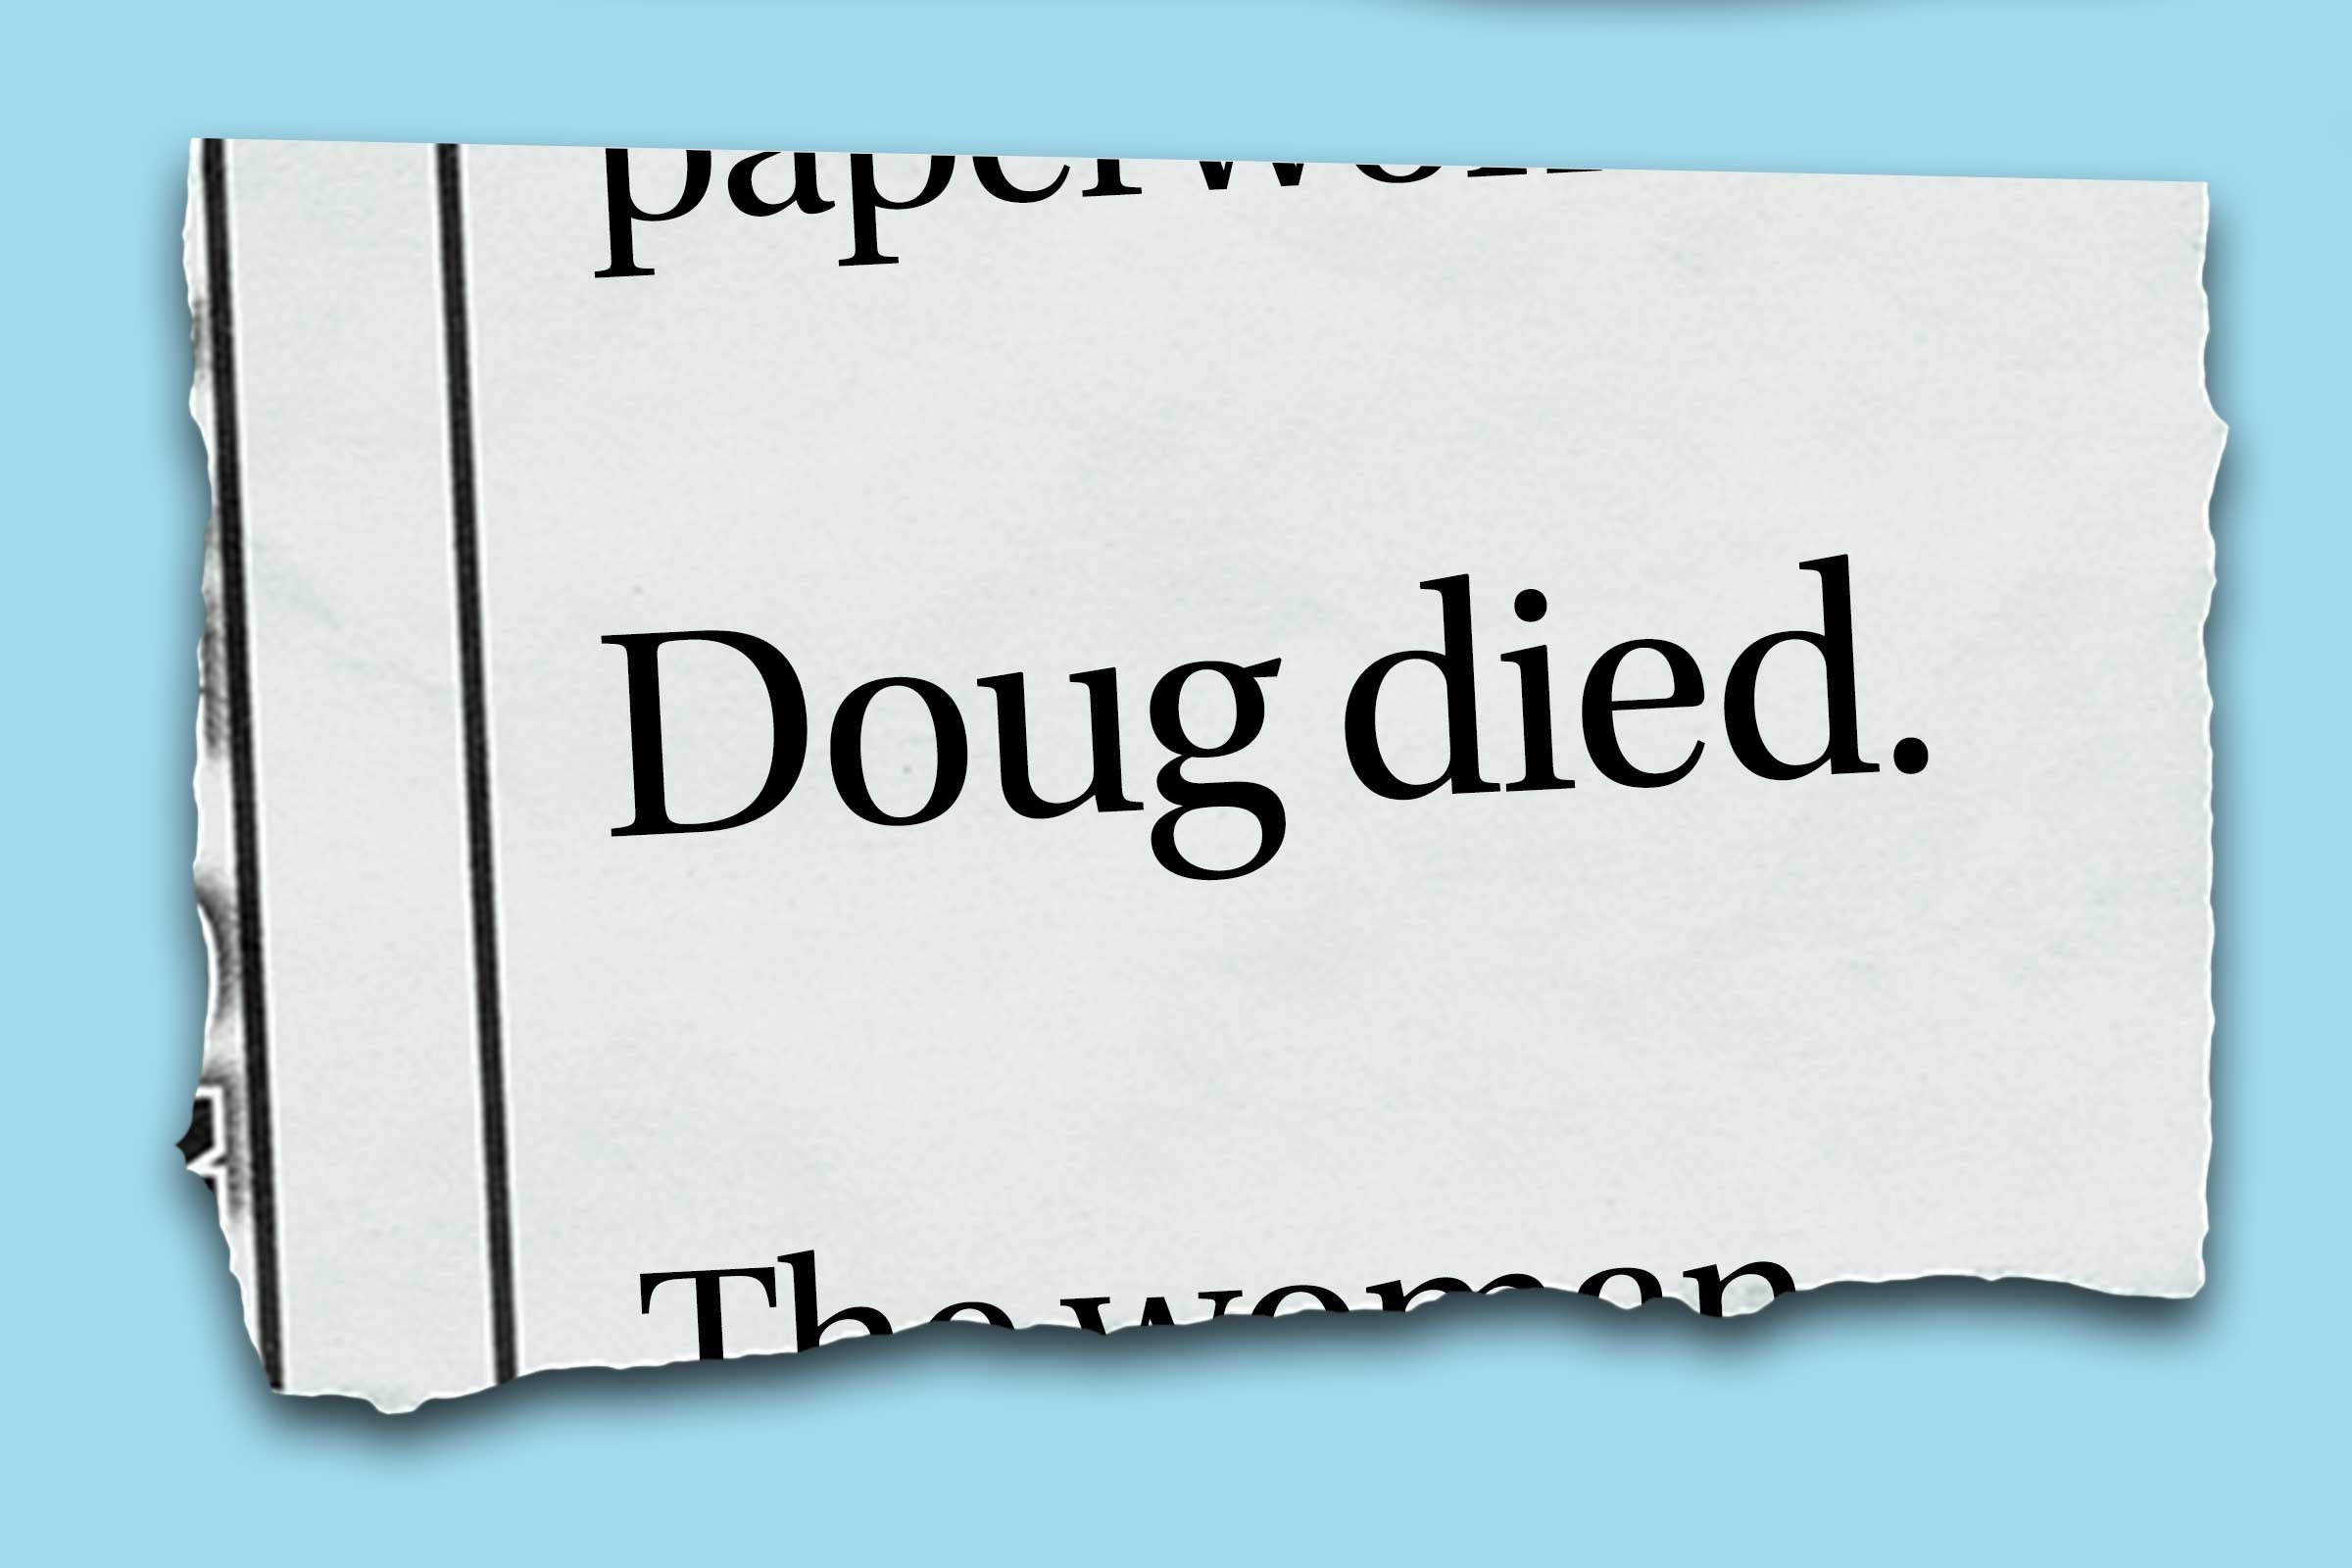 """Funniest obituaries that really exist - """"Doug died."""""""